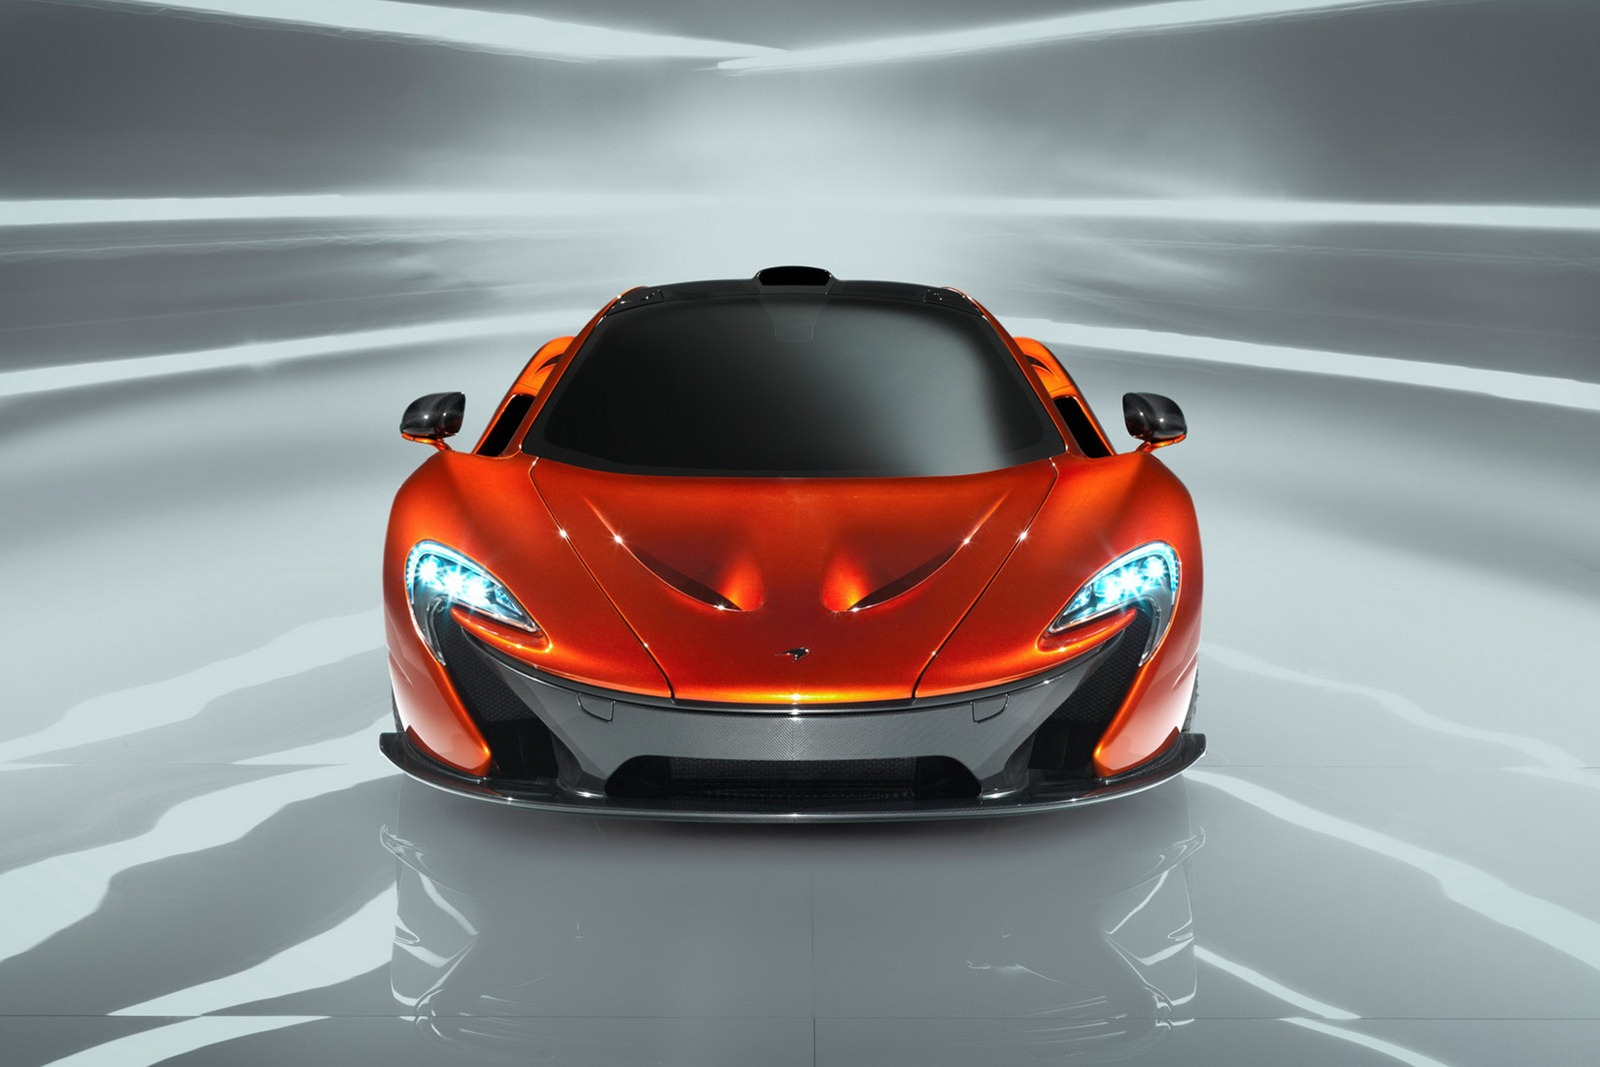 New Mclaren Supercar Concept Previews Successor Autotribute